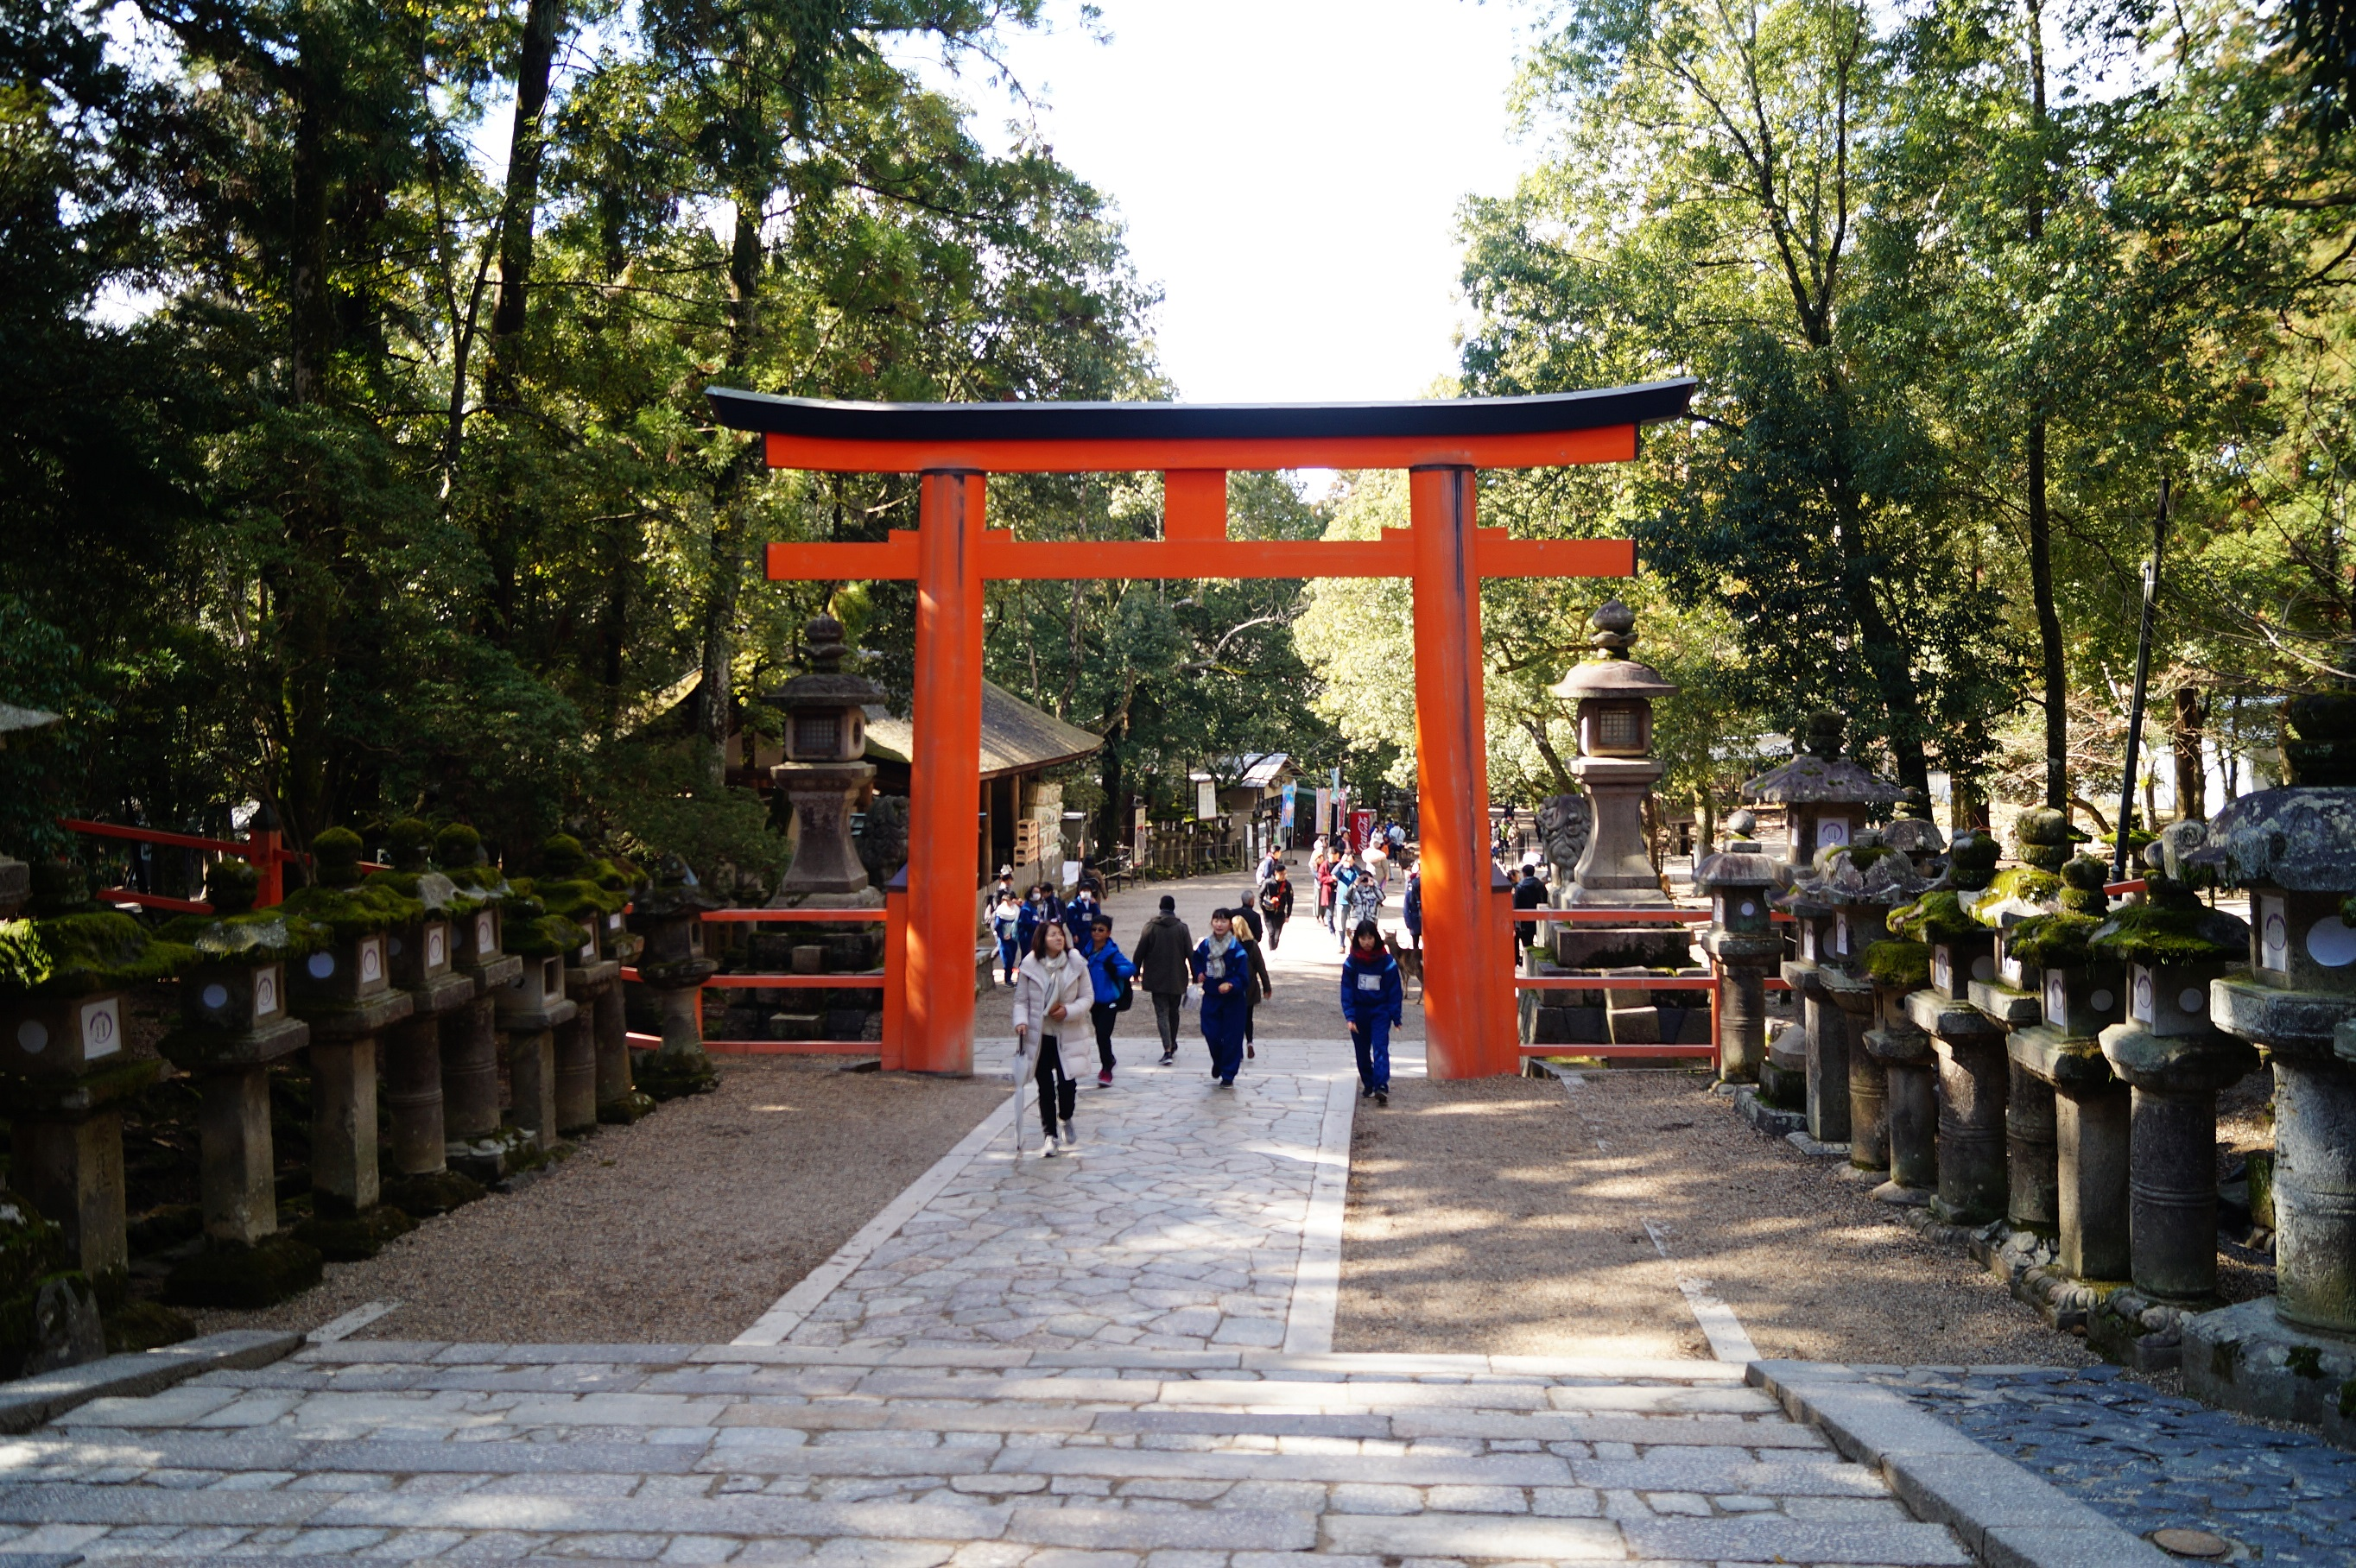 Nara Entrada al parque de Nara - Nara Park and the Sacred Deer of Japan